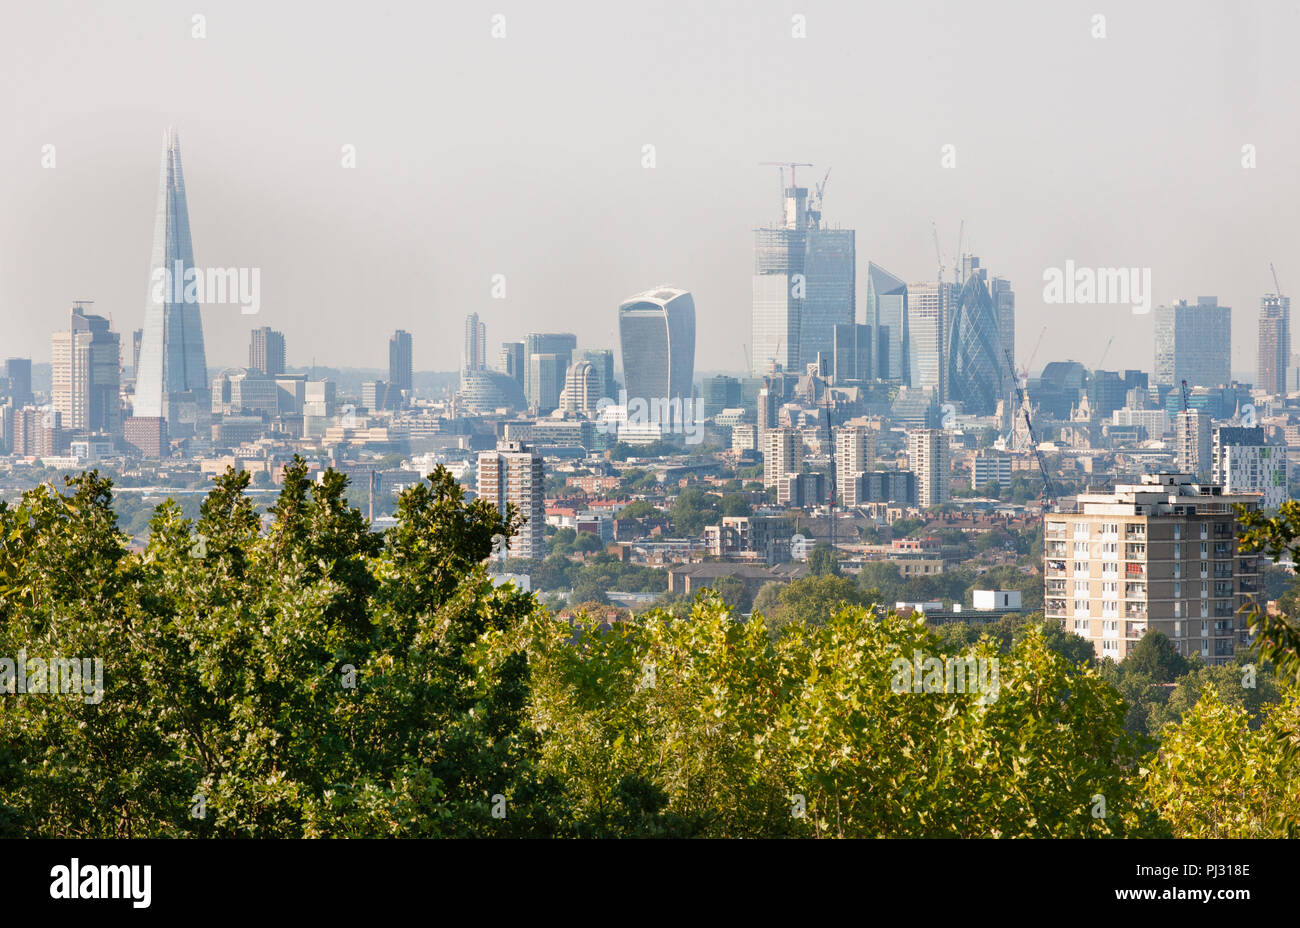 View over City of London skyline from One Tree Hill, Honor Oak, Southwark, London, United Kingdom Stock Photo